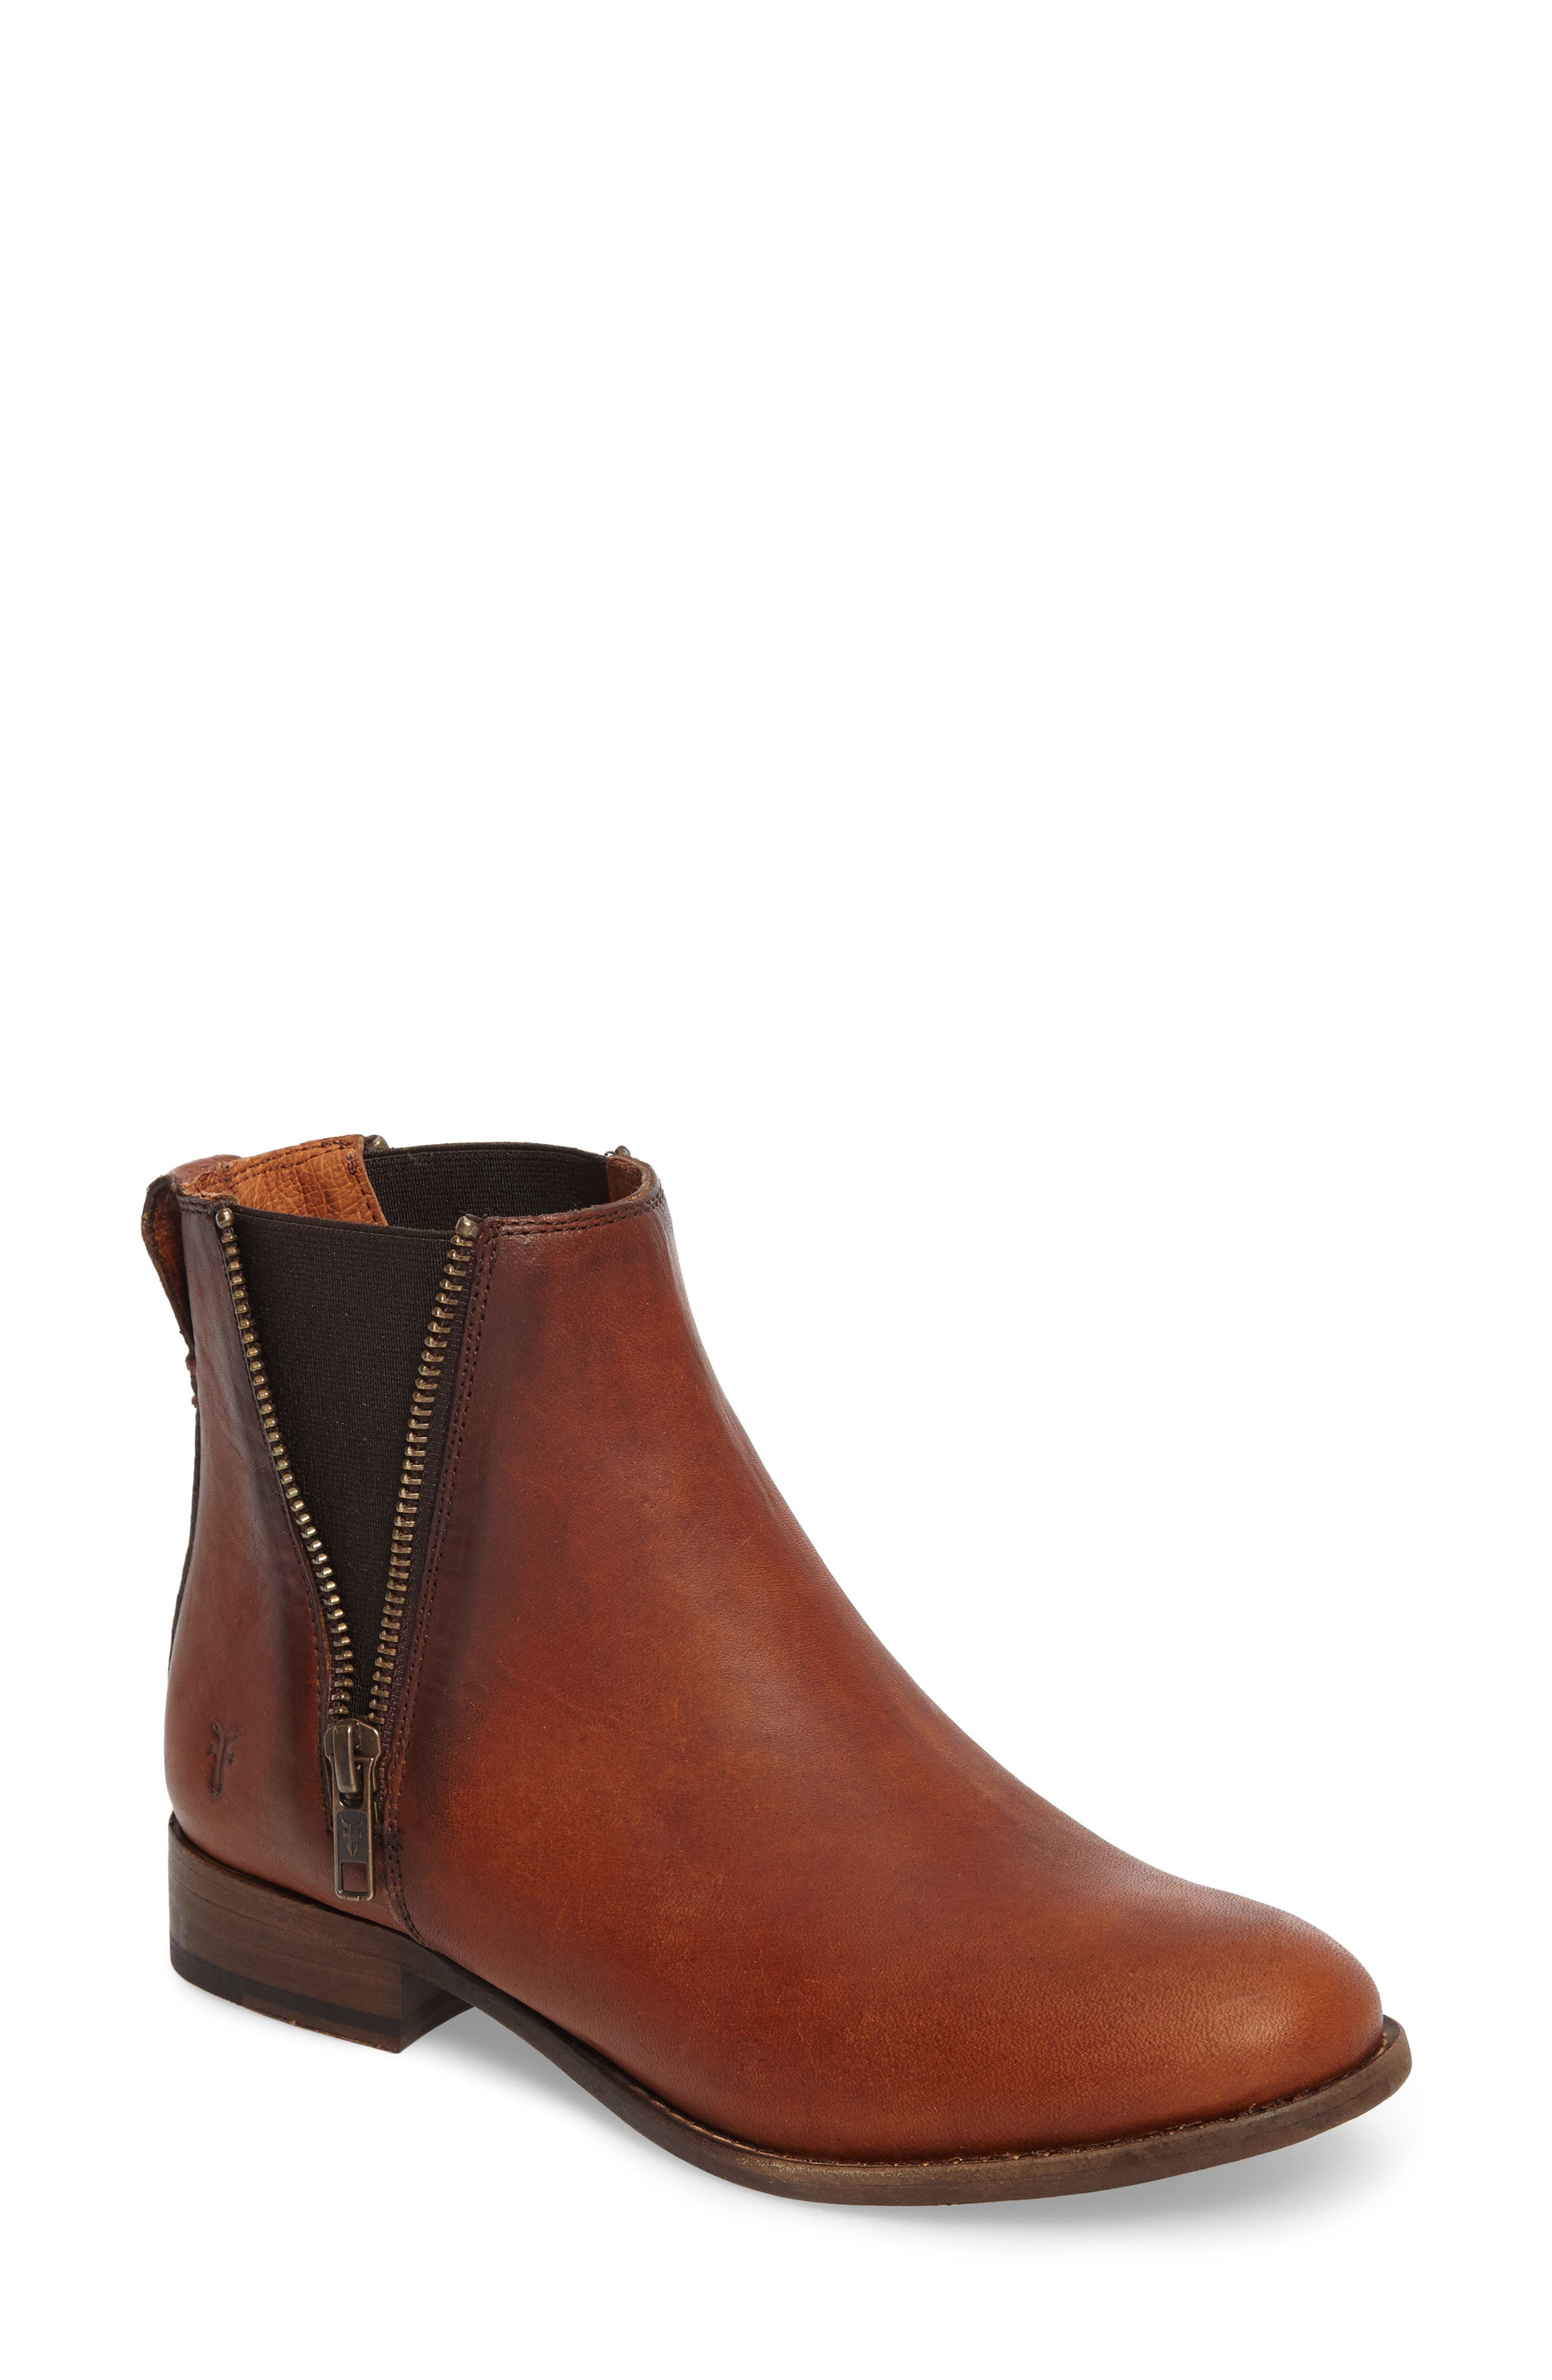 Carly Chelsea Boot,                         Main,                         color, Cognac Leather